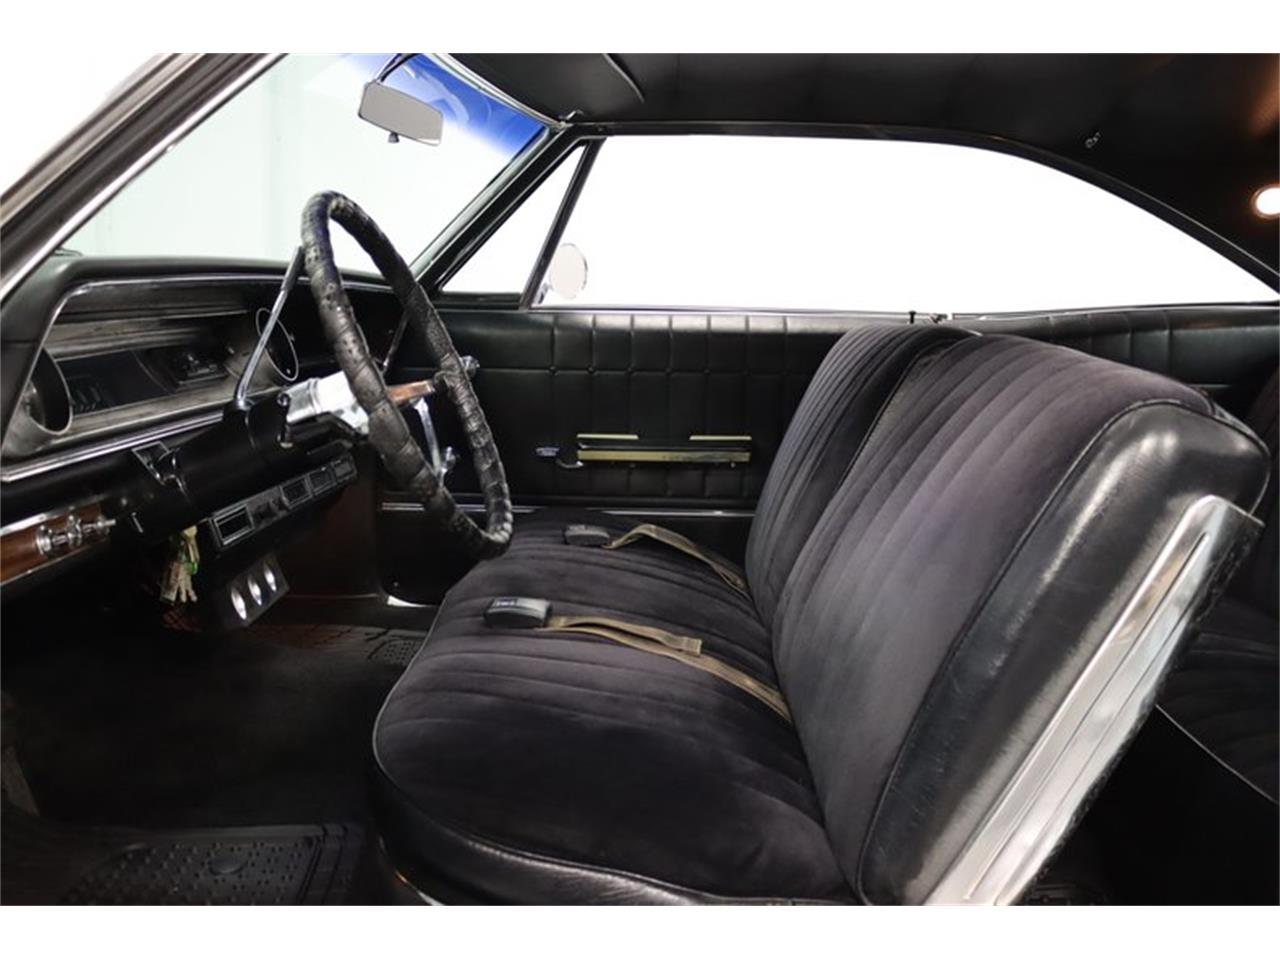 1965 Chevrolet Impala (CC-1389680) for sale in Ft Worth, Texas